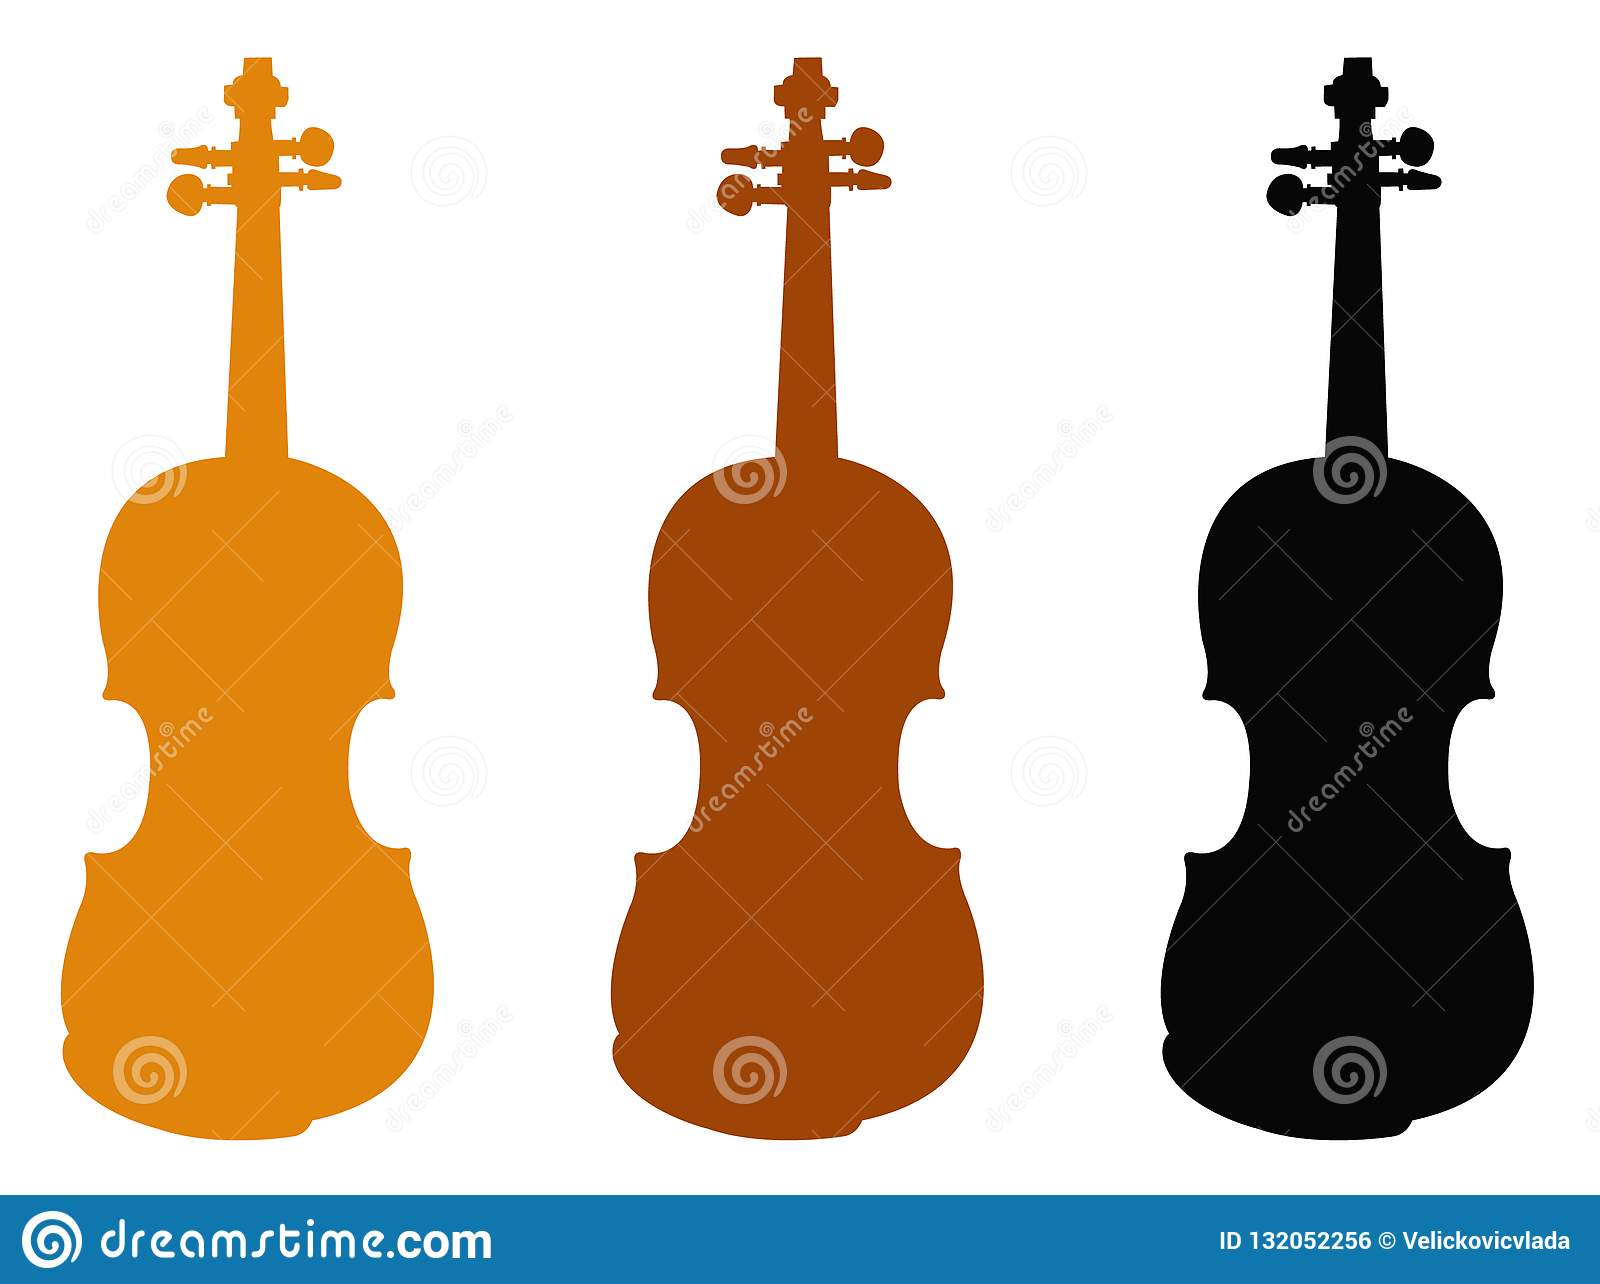 Violin silhouette - fiddle, is a wooden string instrument in the violin family